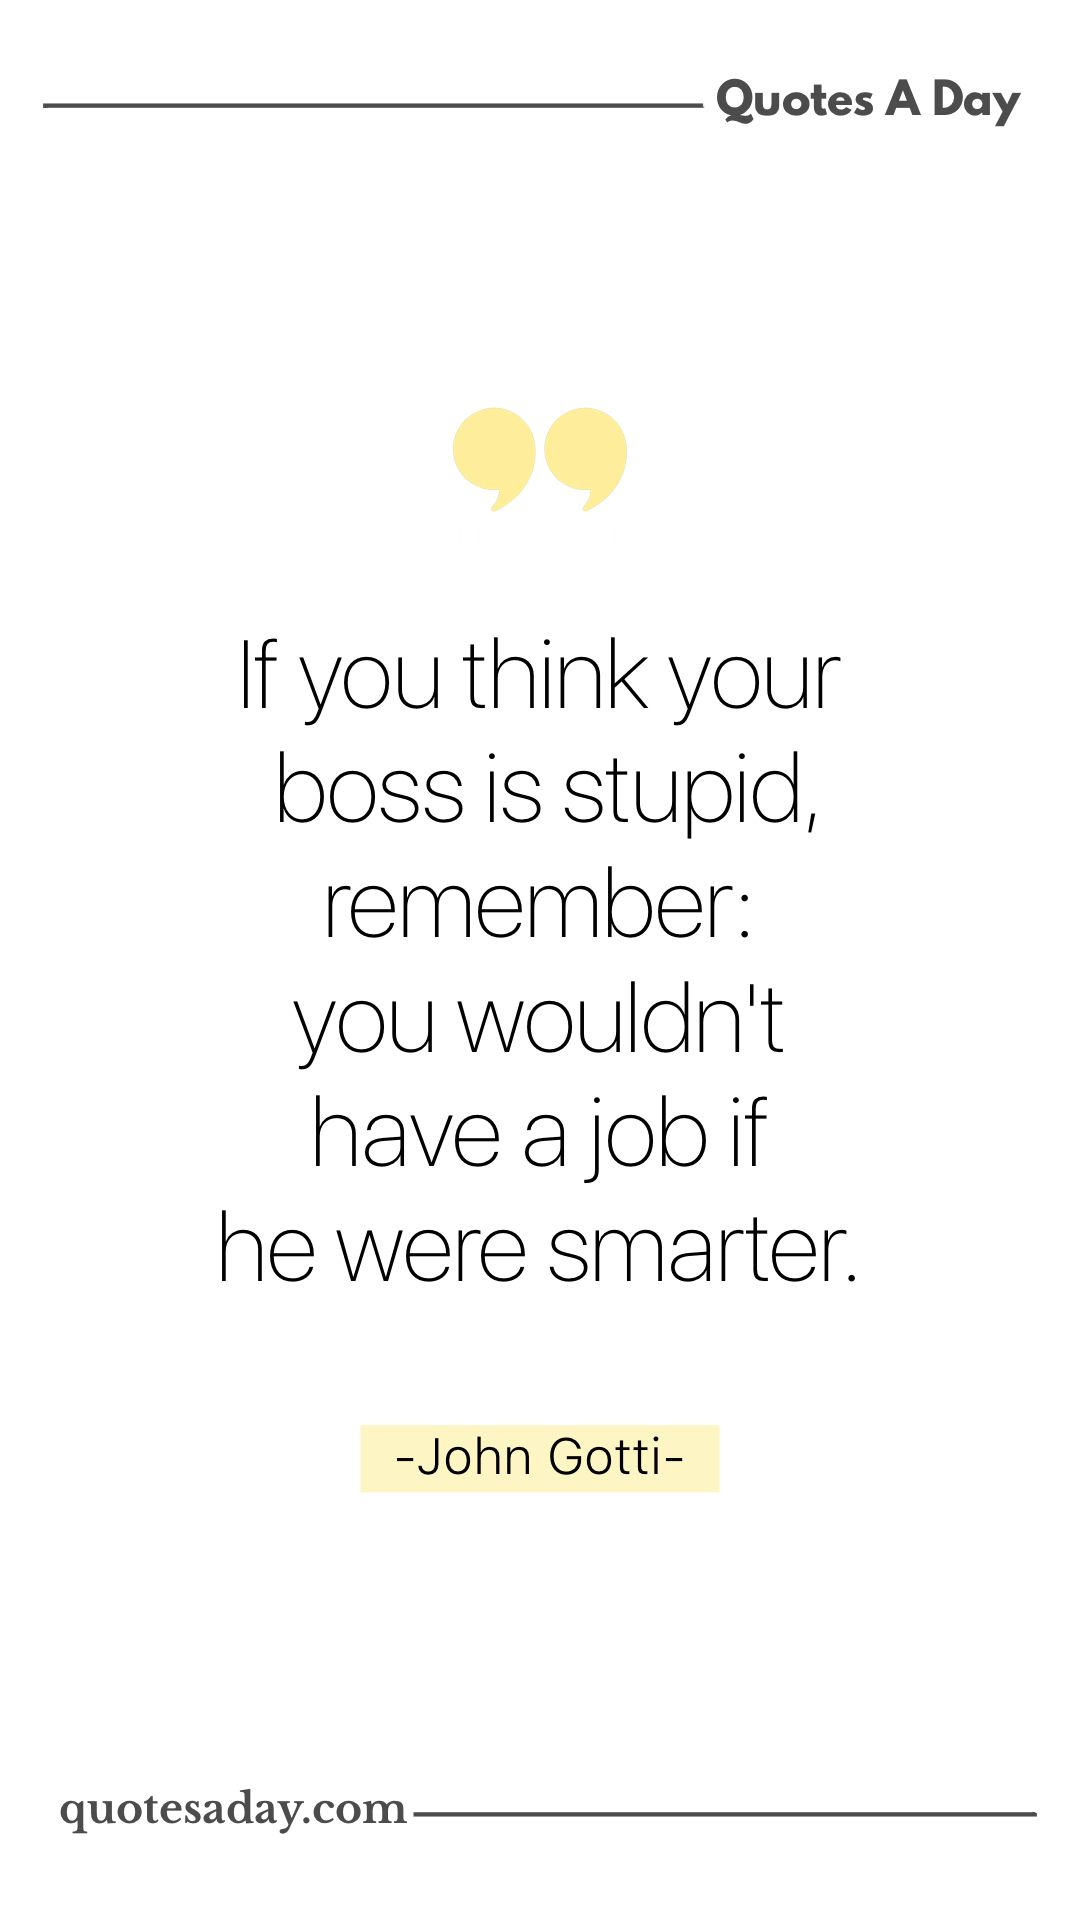 John Gotti Funny Business Quote Work Quotes Business Quotes Funny Business Quotes